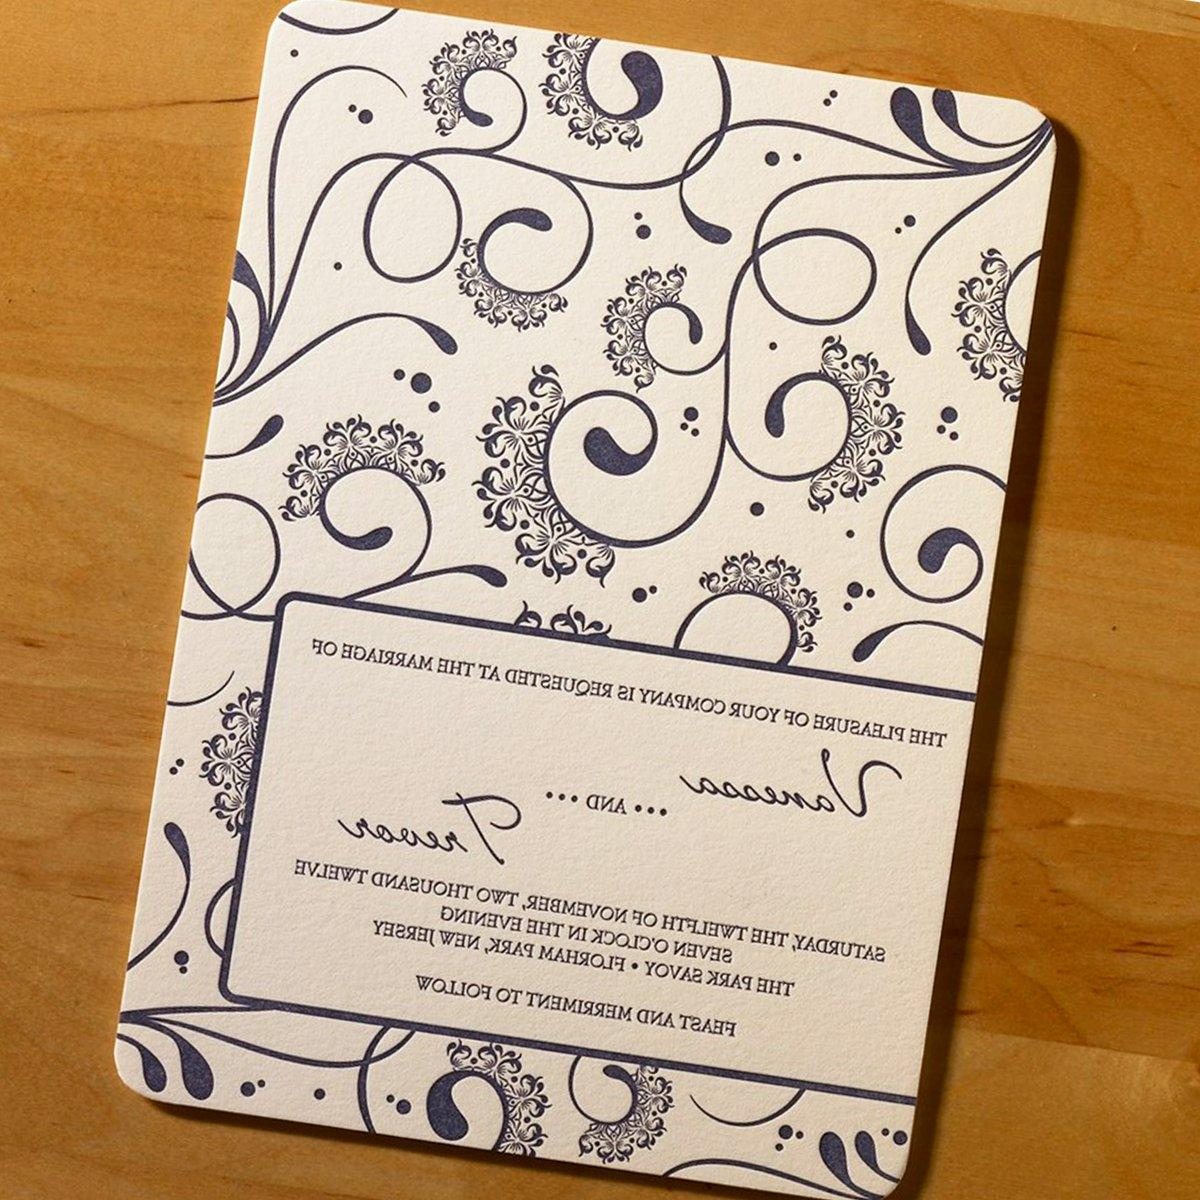 This impressive letterpress wedding invitation features vivacious swirls